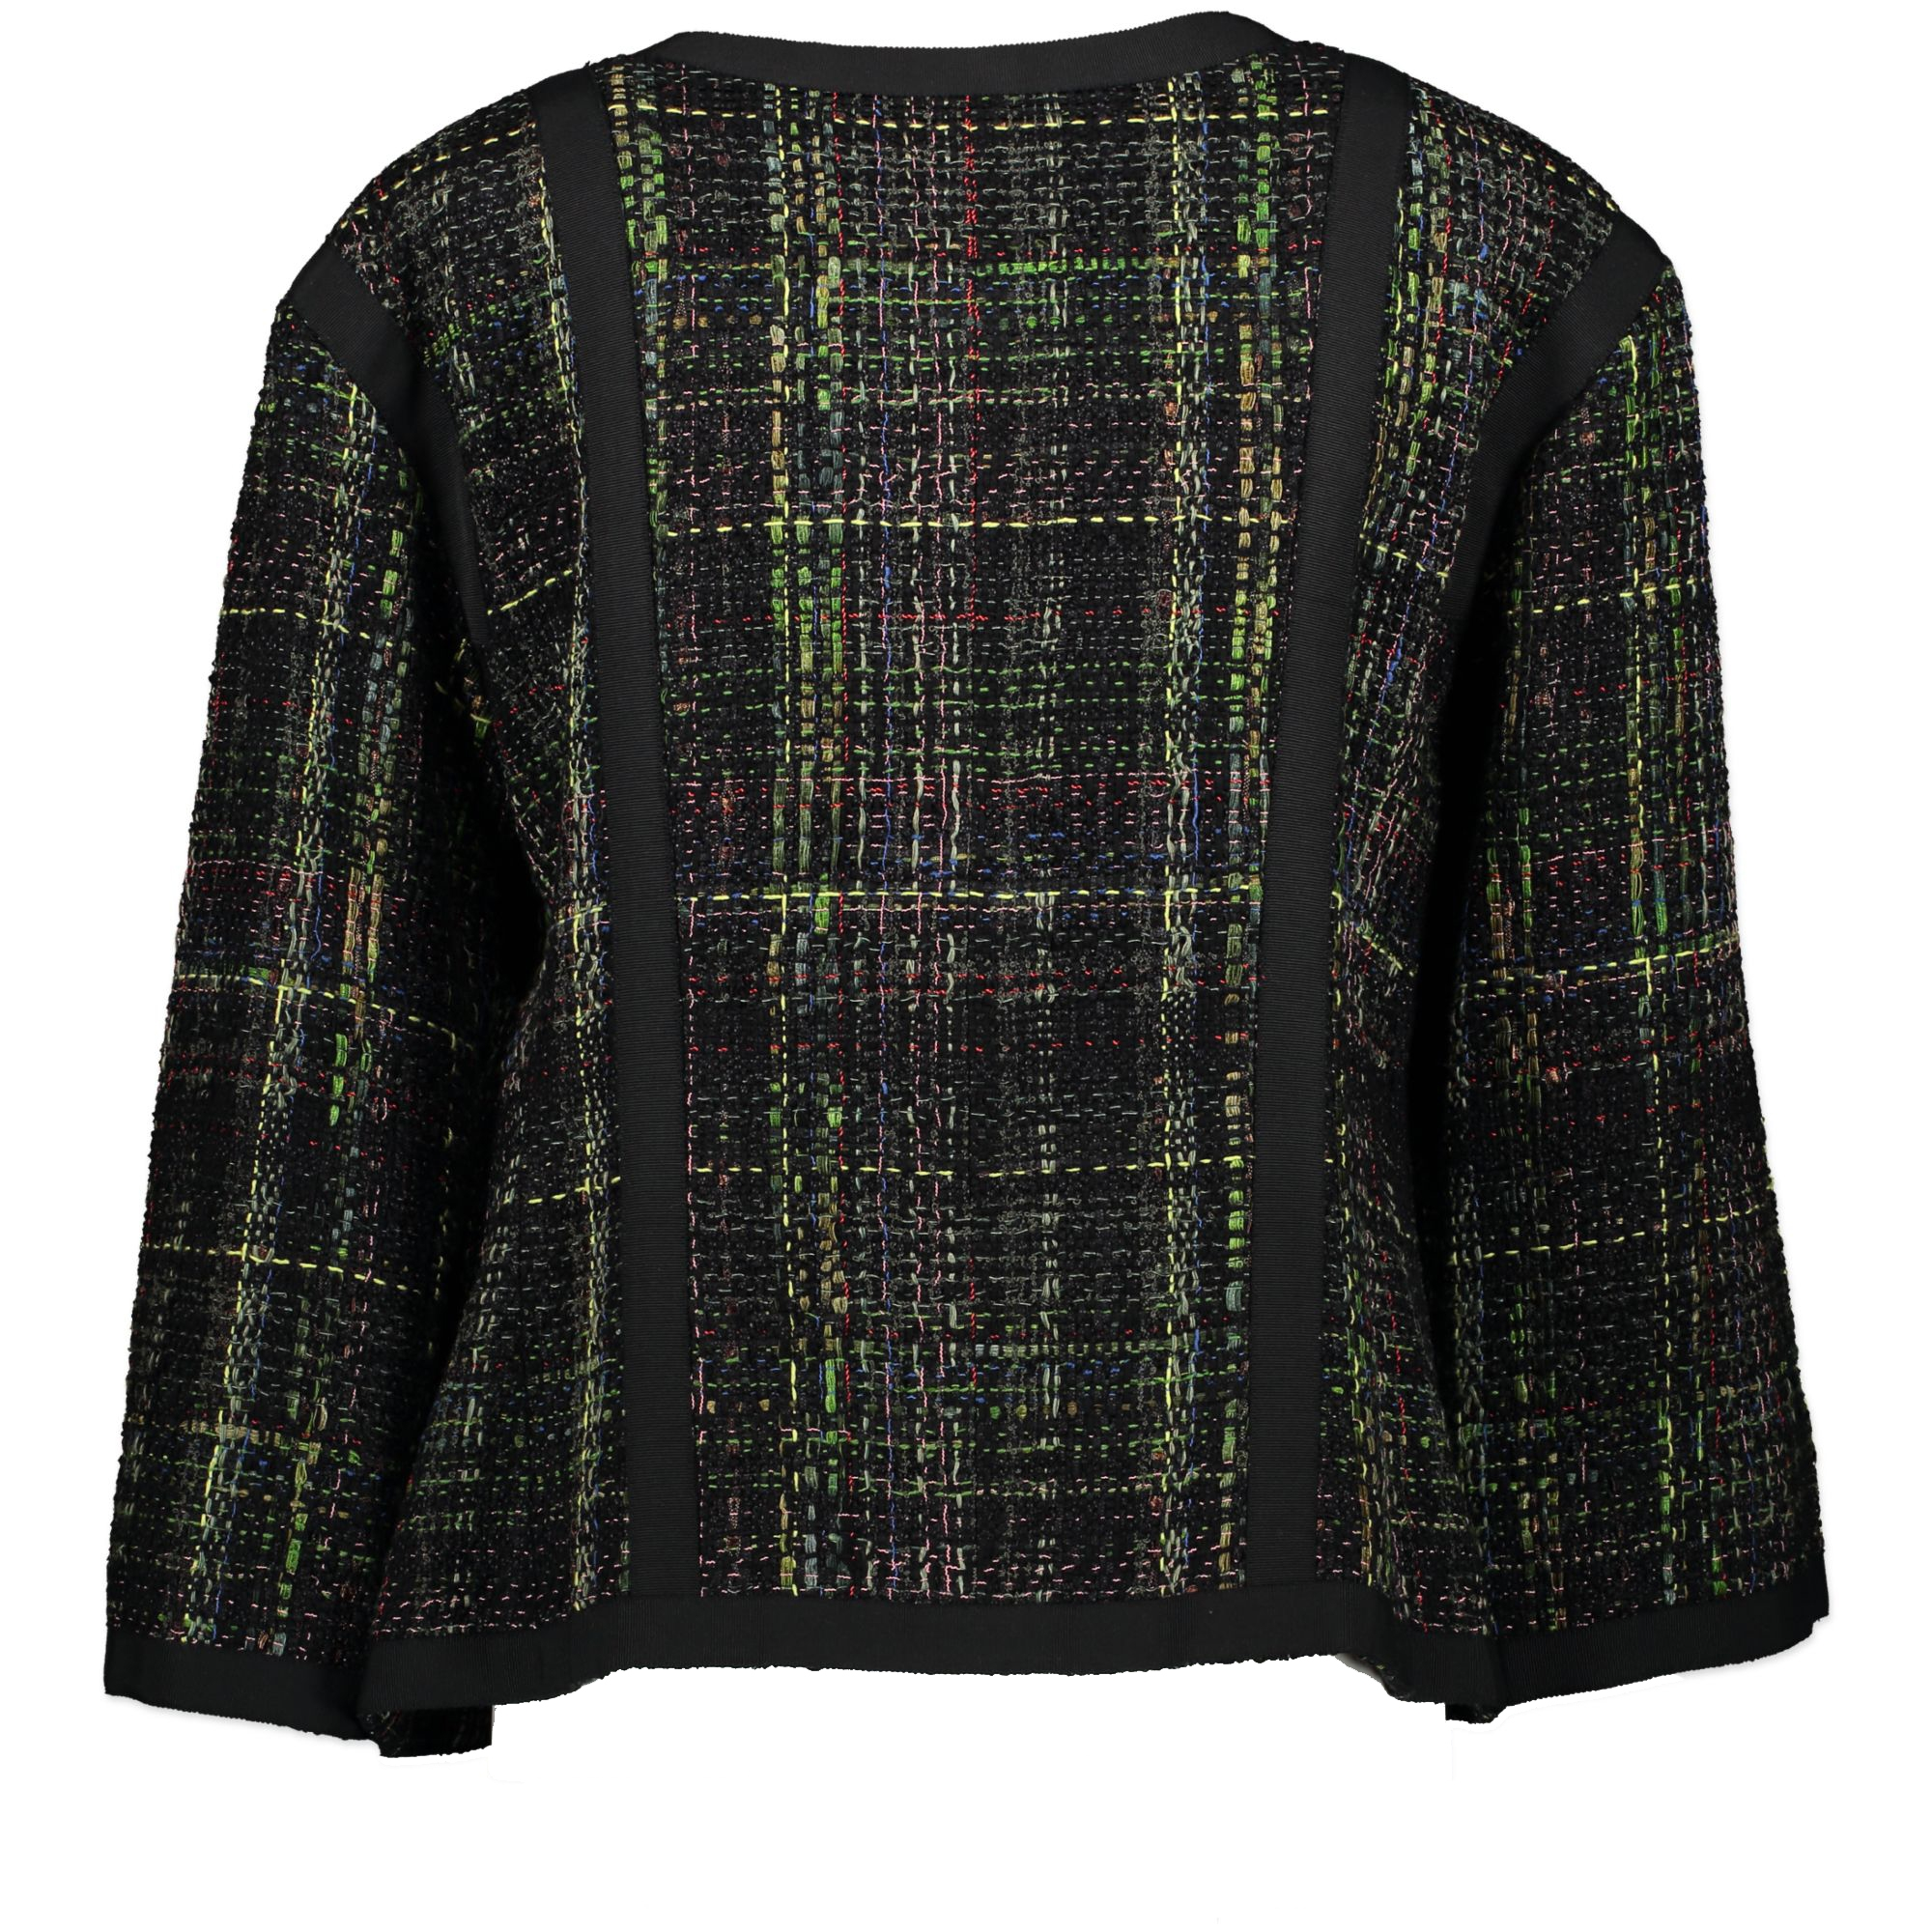 a770d99eb42d ... Labellov secondhand We buy and sell your authentic Chanel Black Green  Tweed Jacket - Size FR 46